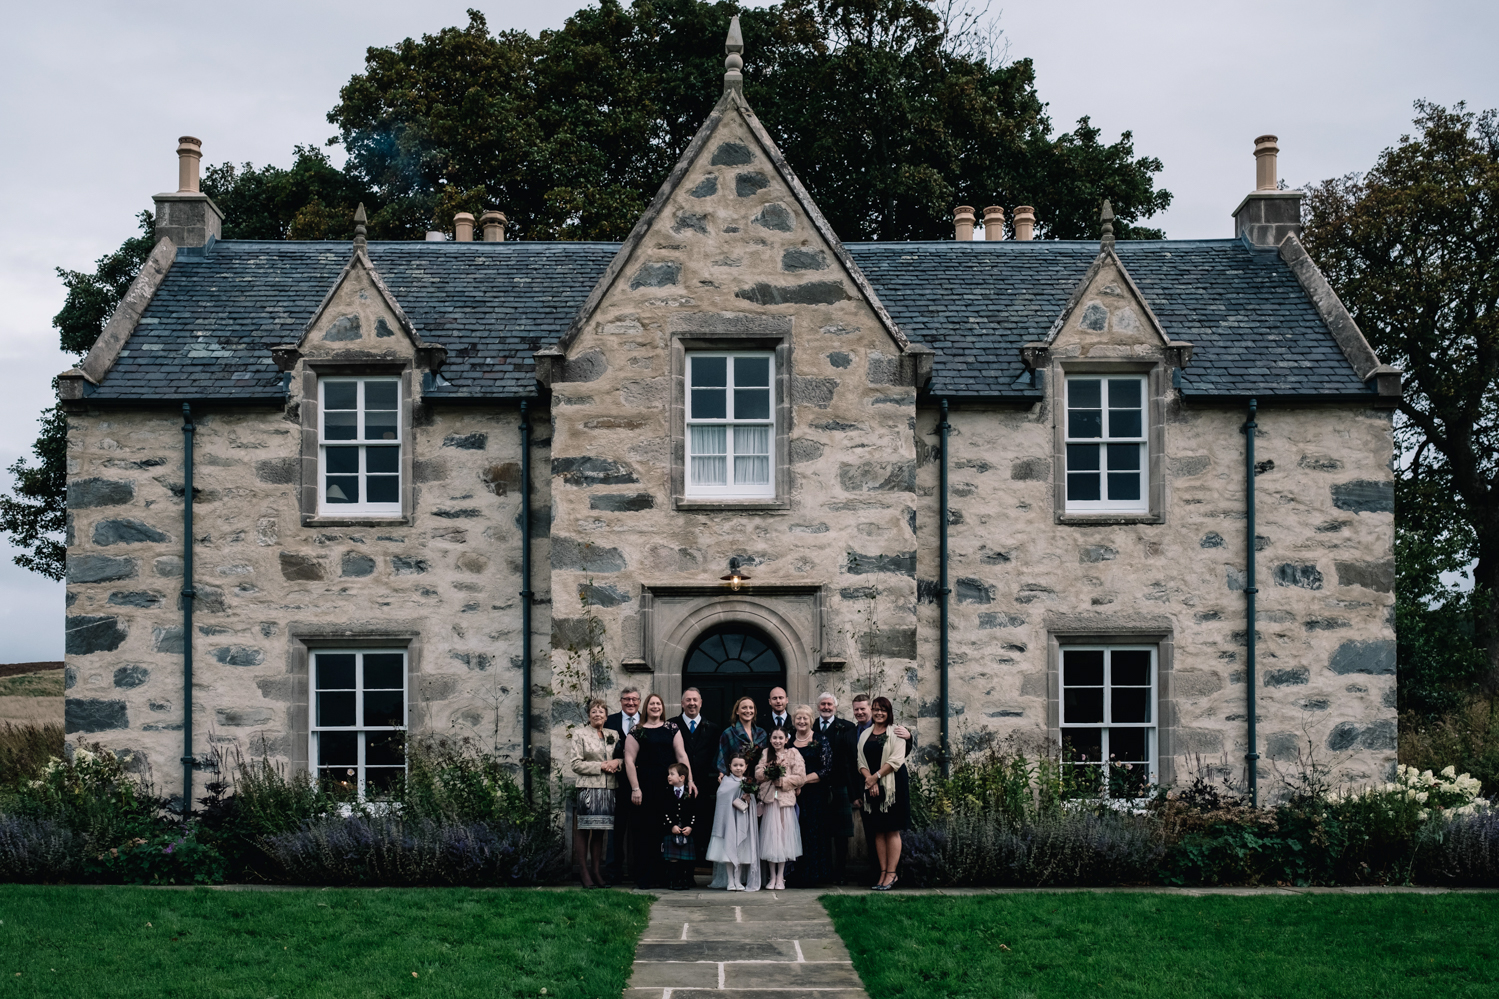 005-Wedding-Killiehuntly-Farmhouse-group.jpg